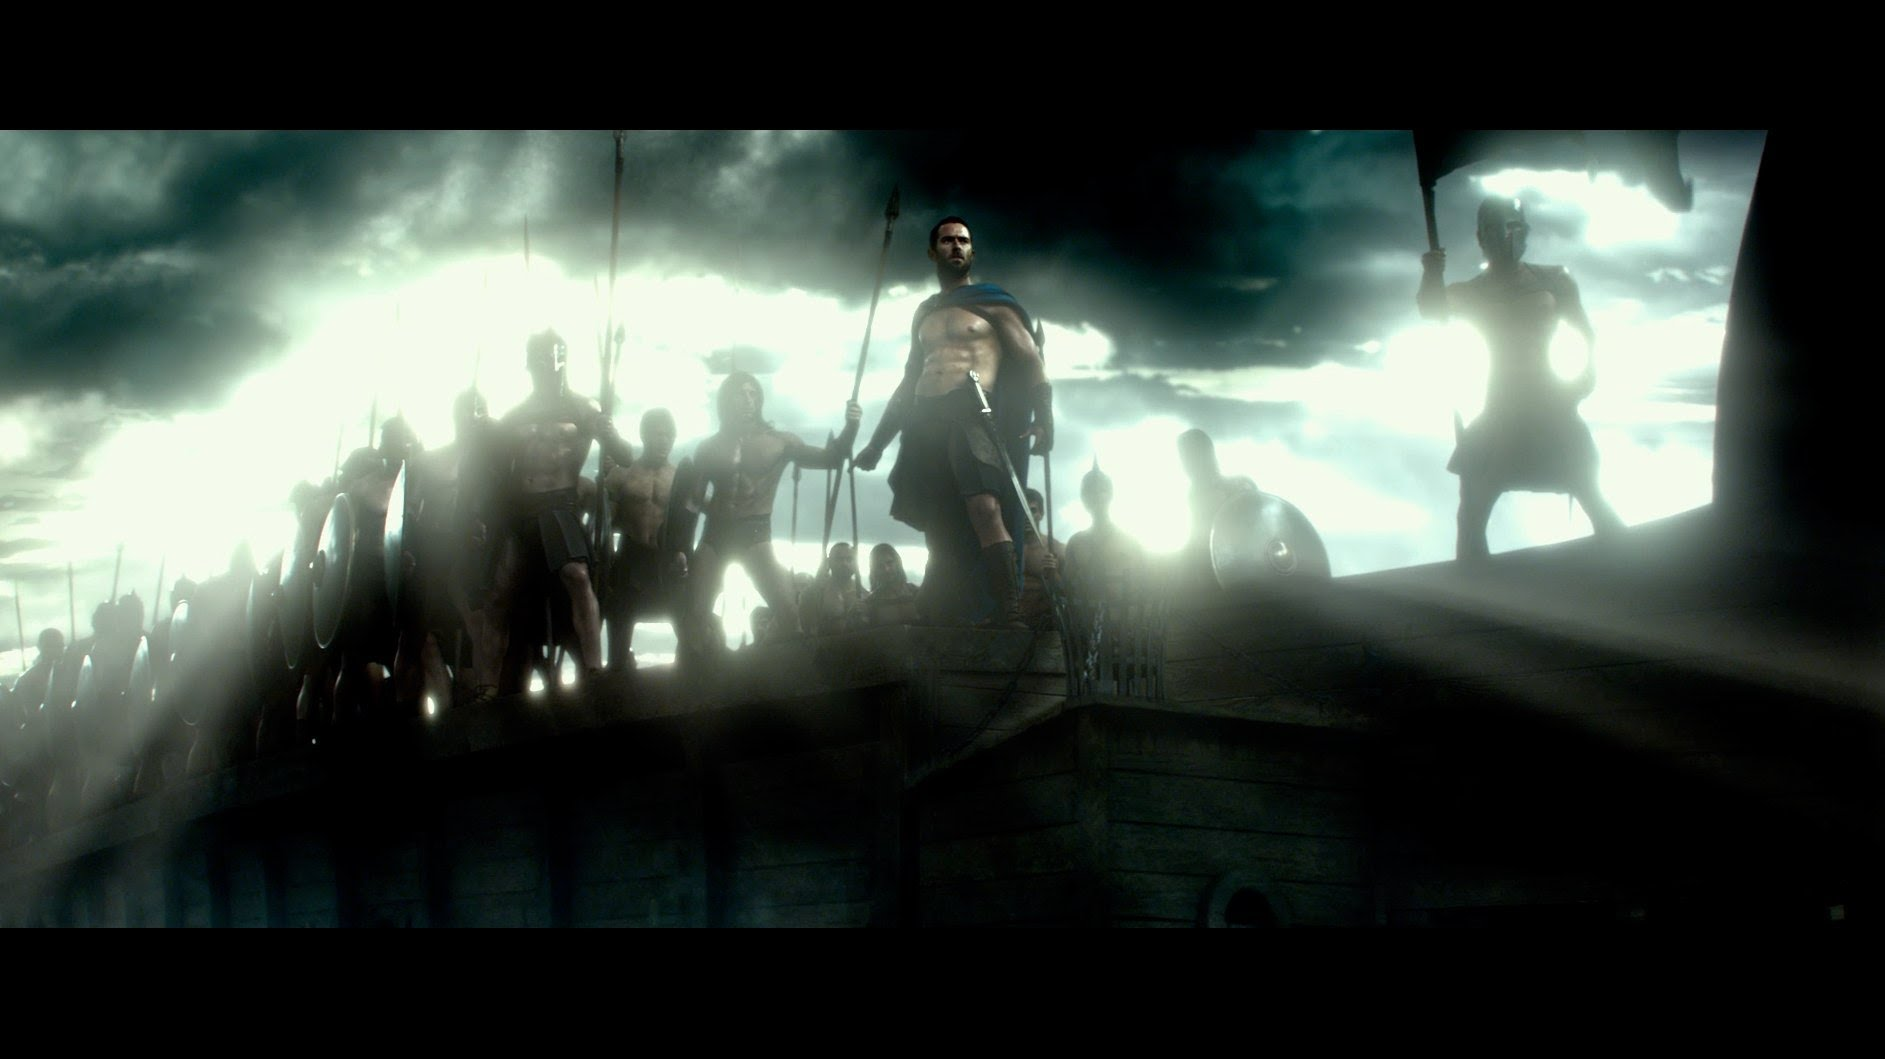 Trailer: 300 – RISE OF AN EMPIRE